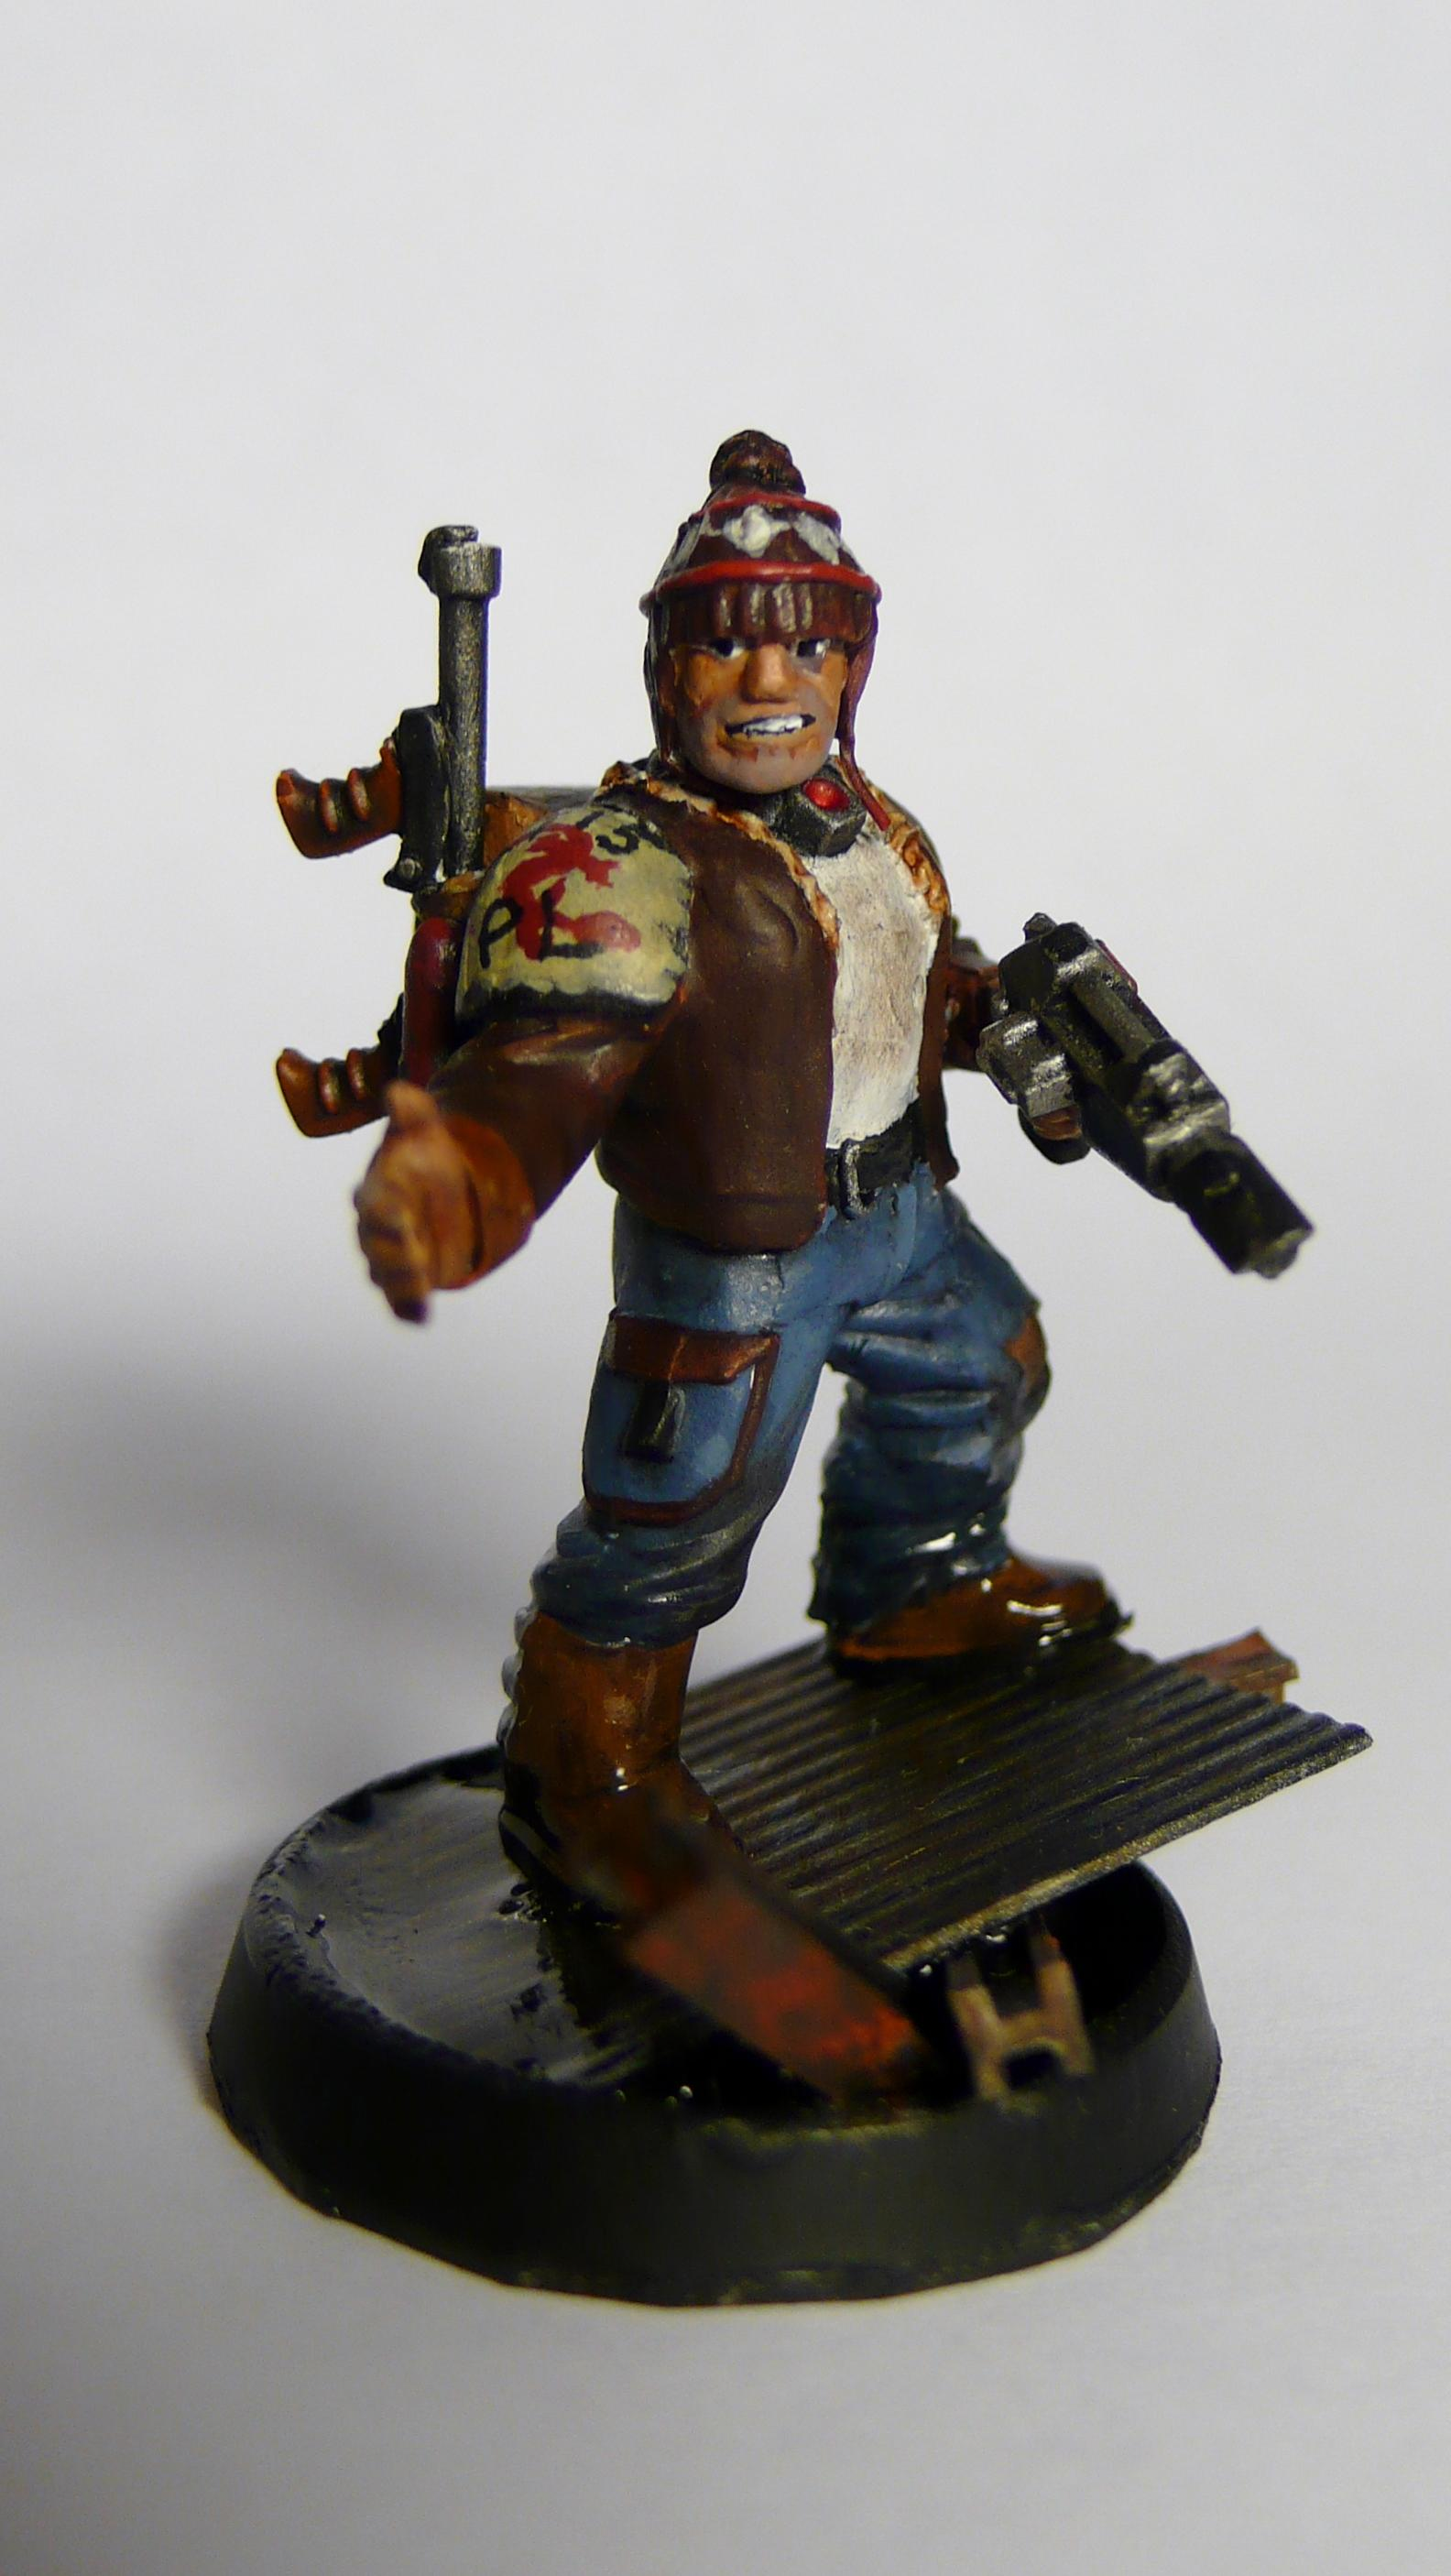 Flamer, Hat, Necromunda, Rust, Smile, Water, Wooly